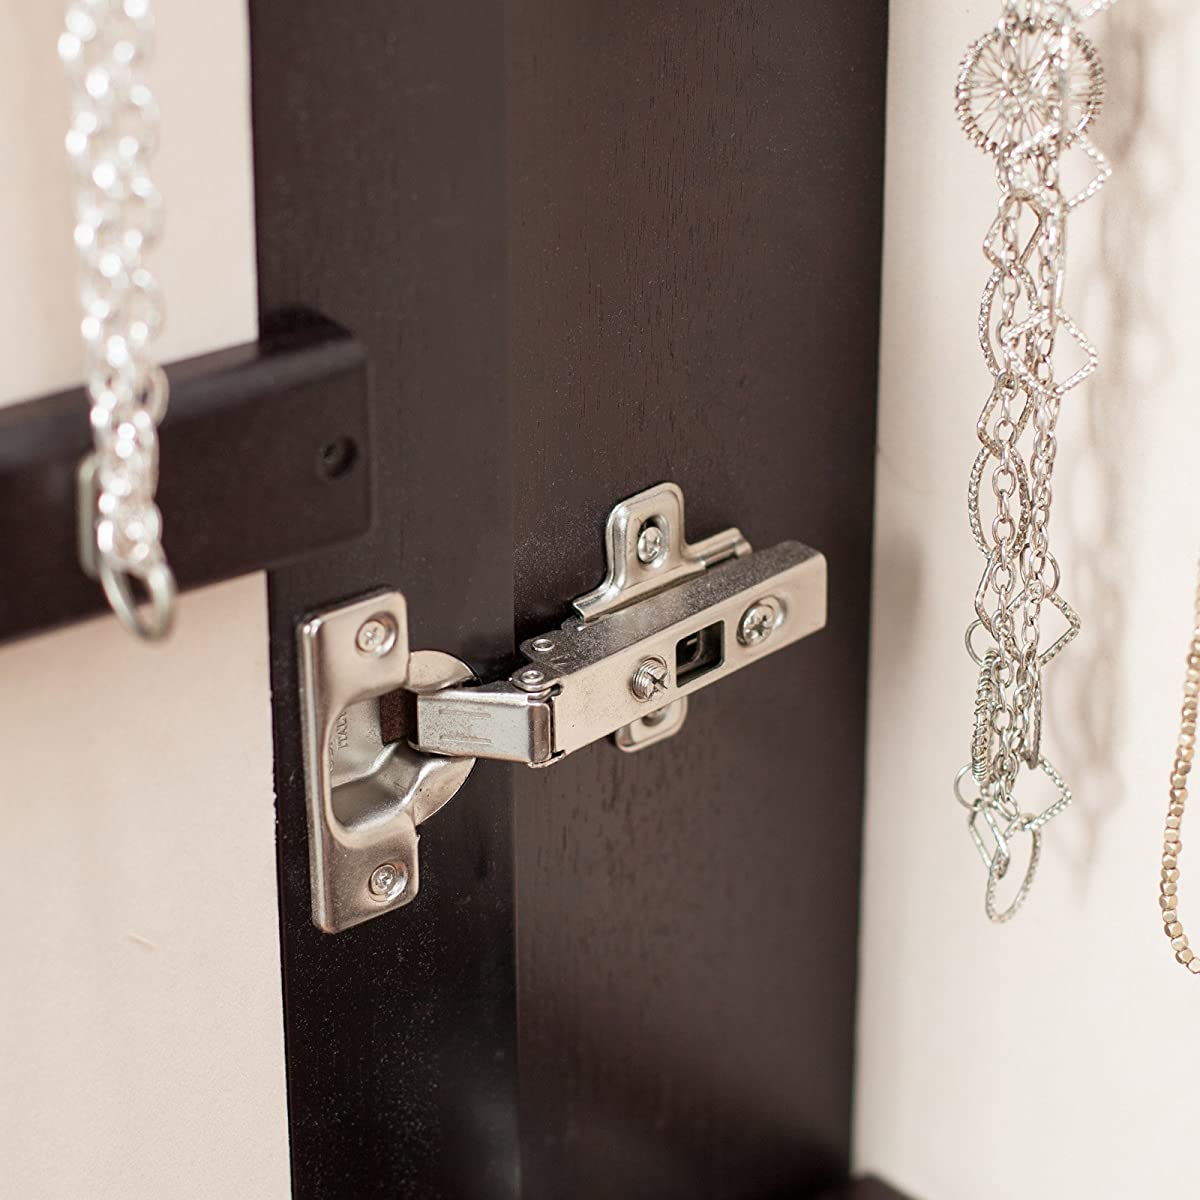 Belham Living Lighted Wall Mount Locking Jewelry Armoire - - 14.5W x 50H in.